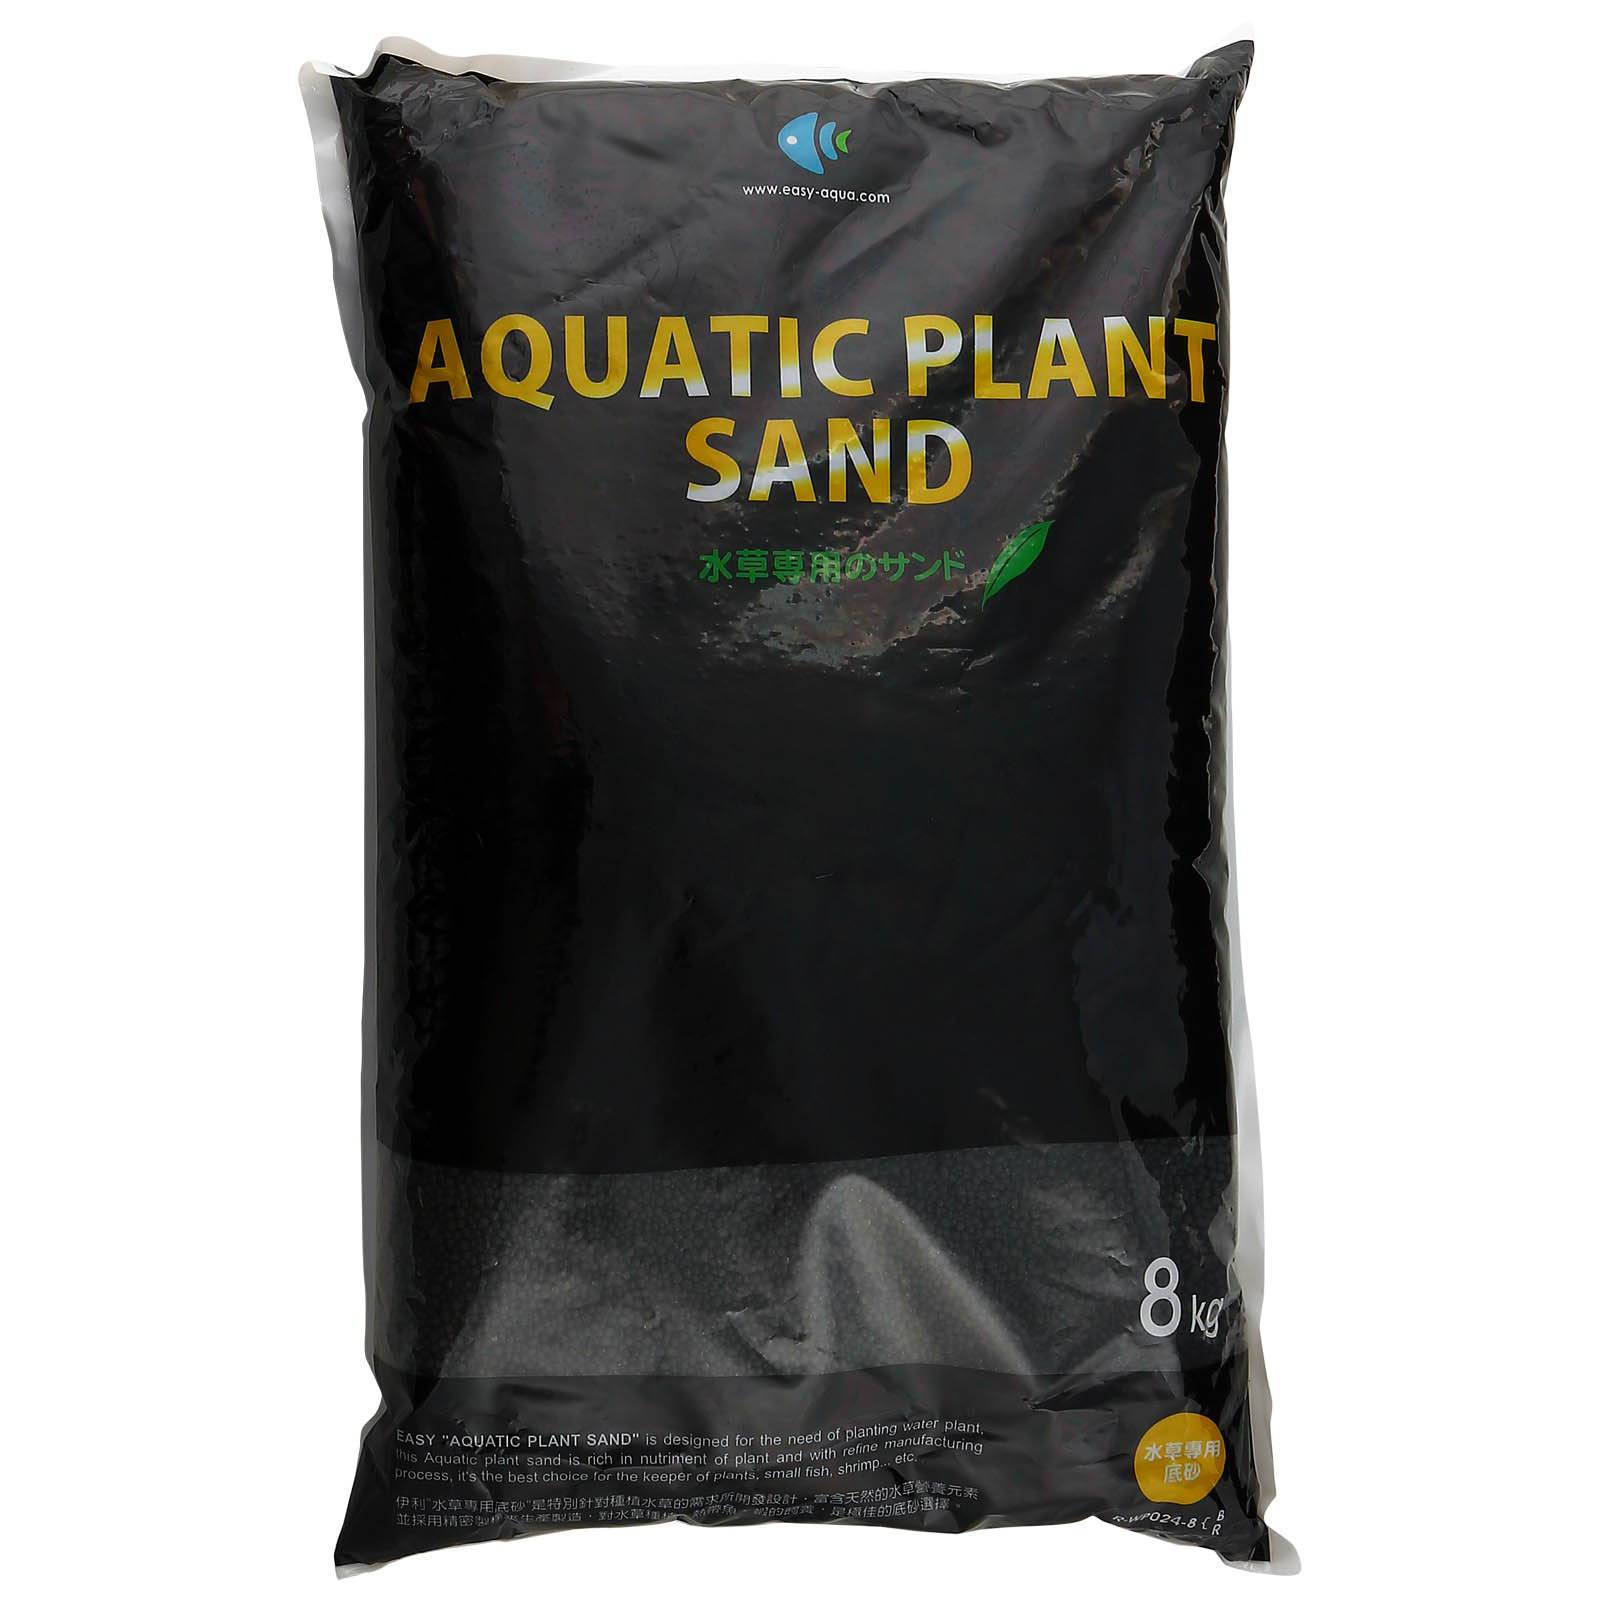 Easy Aqua - Aquatic Plant Sand - 8 kg